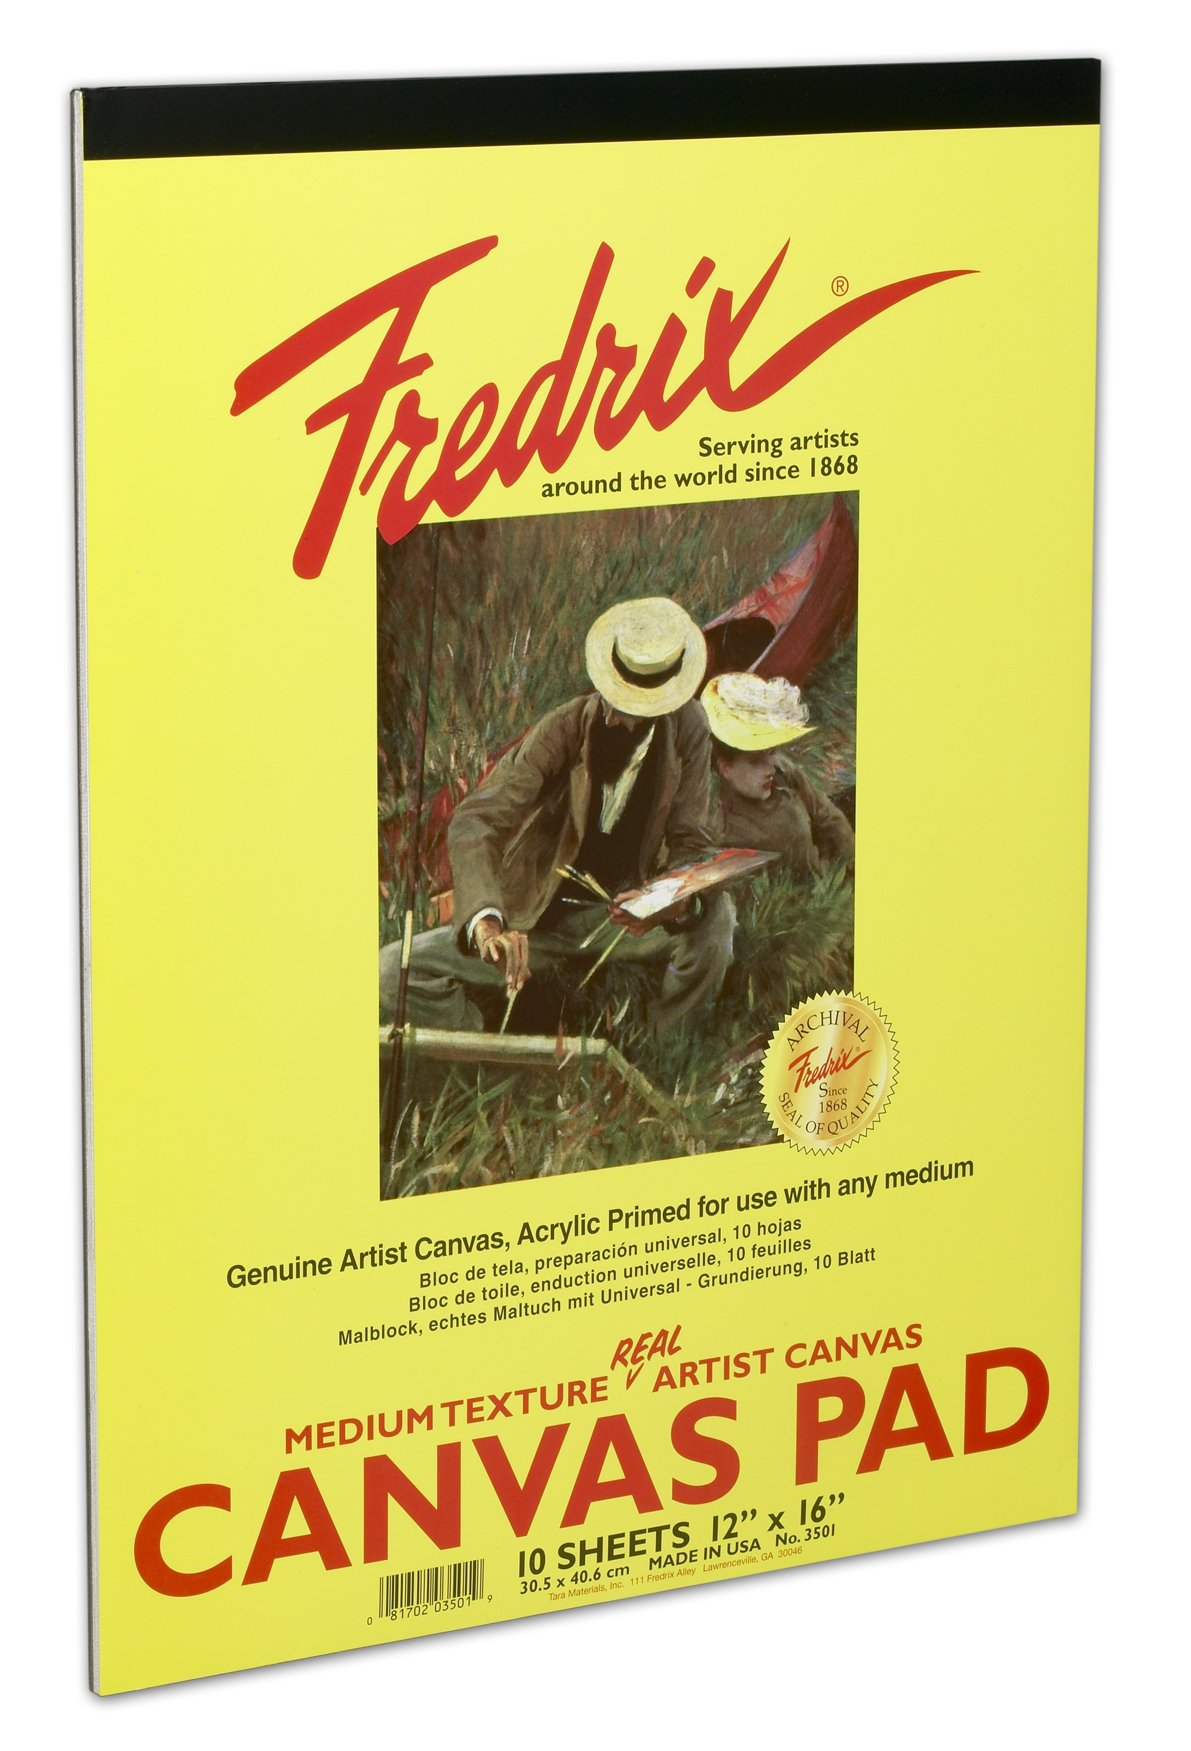 Fredrix 3503 White Canvas Pad, 18'' x 24'' White Canvas, Primed and Ready for use with Any Medium, Sturdy, Can be Mounted When Dry, 10 Sheets per Pad